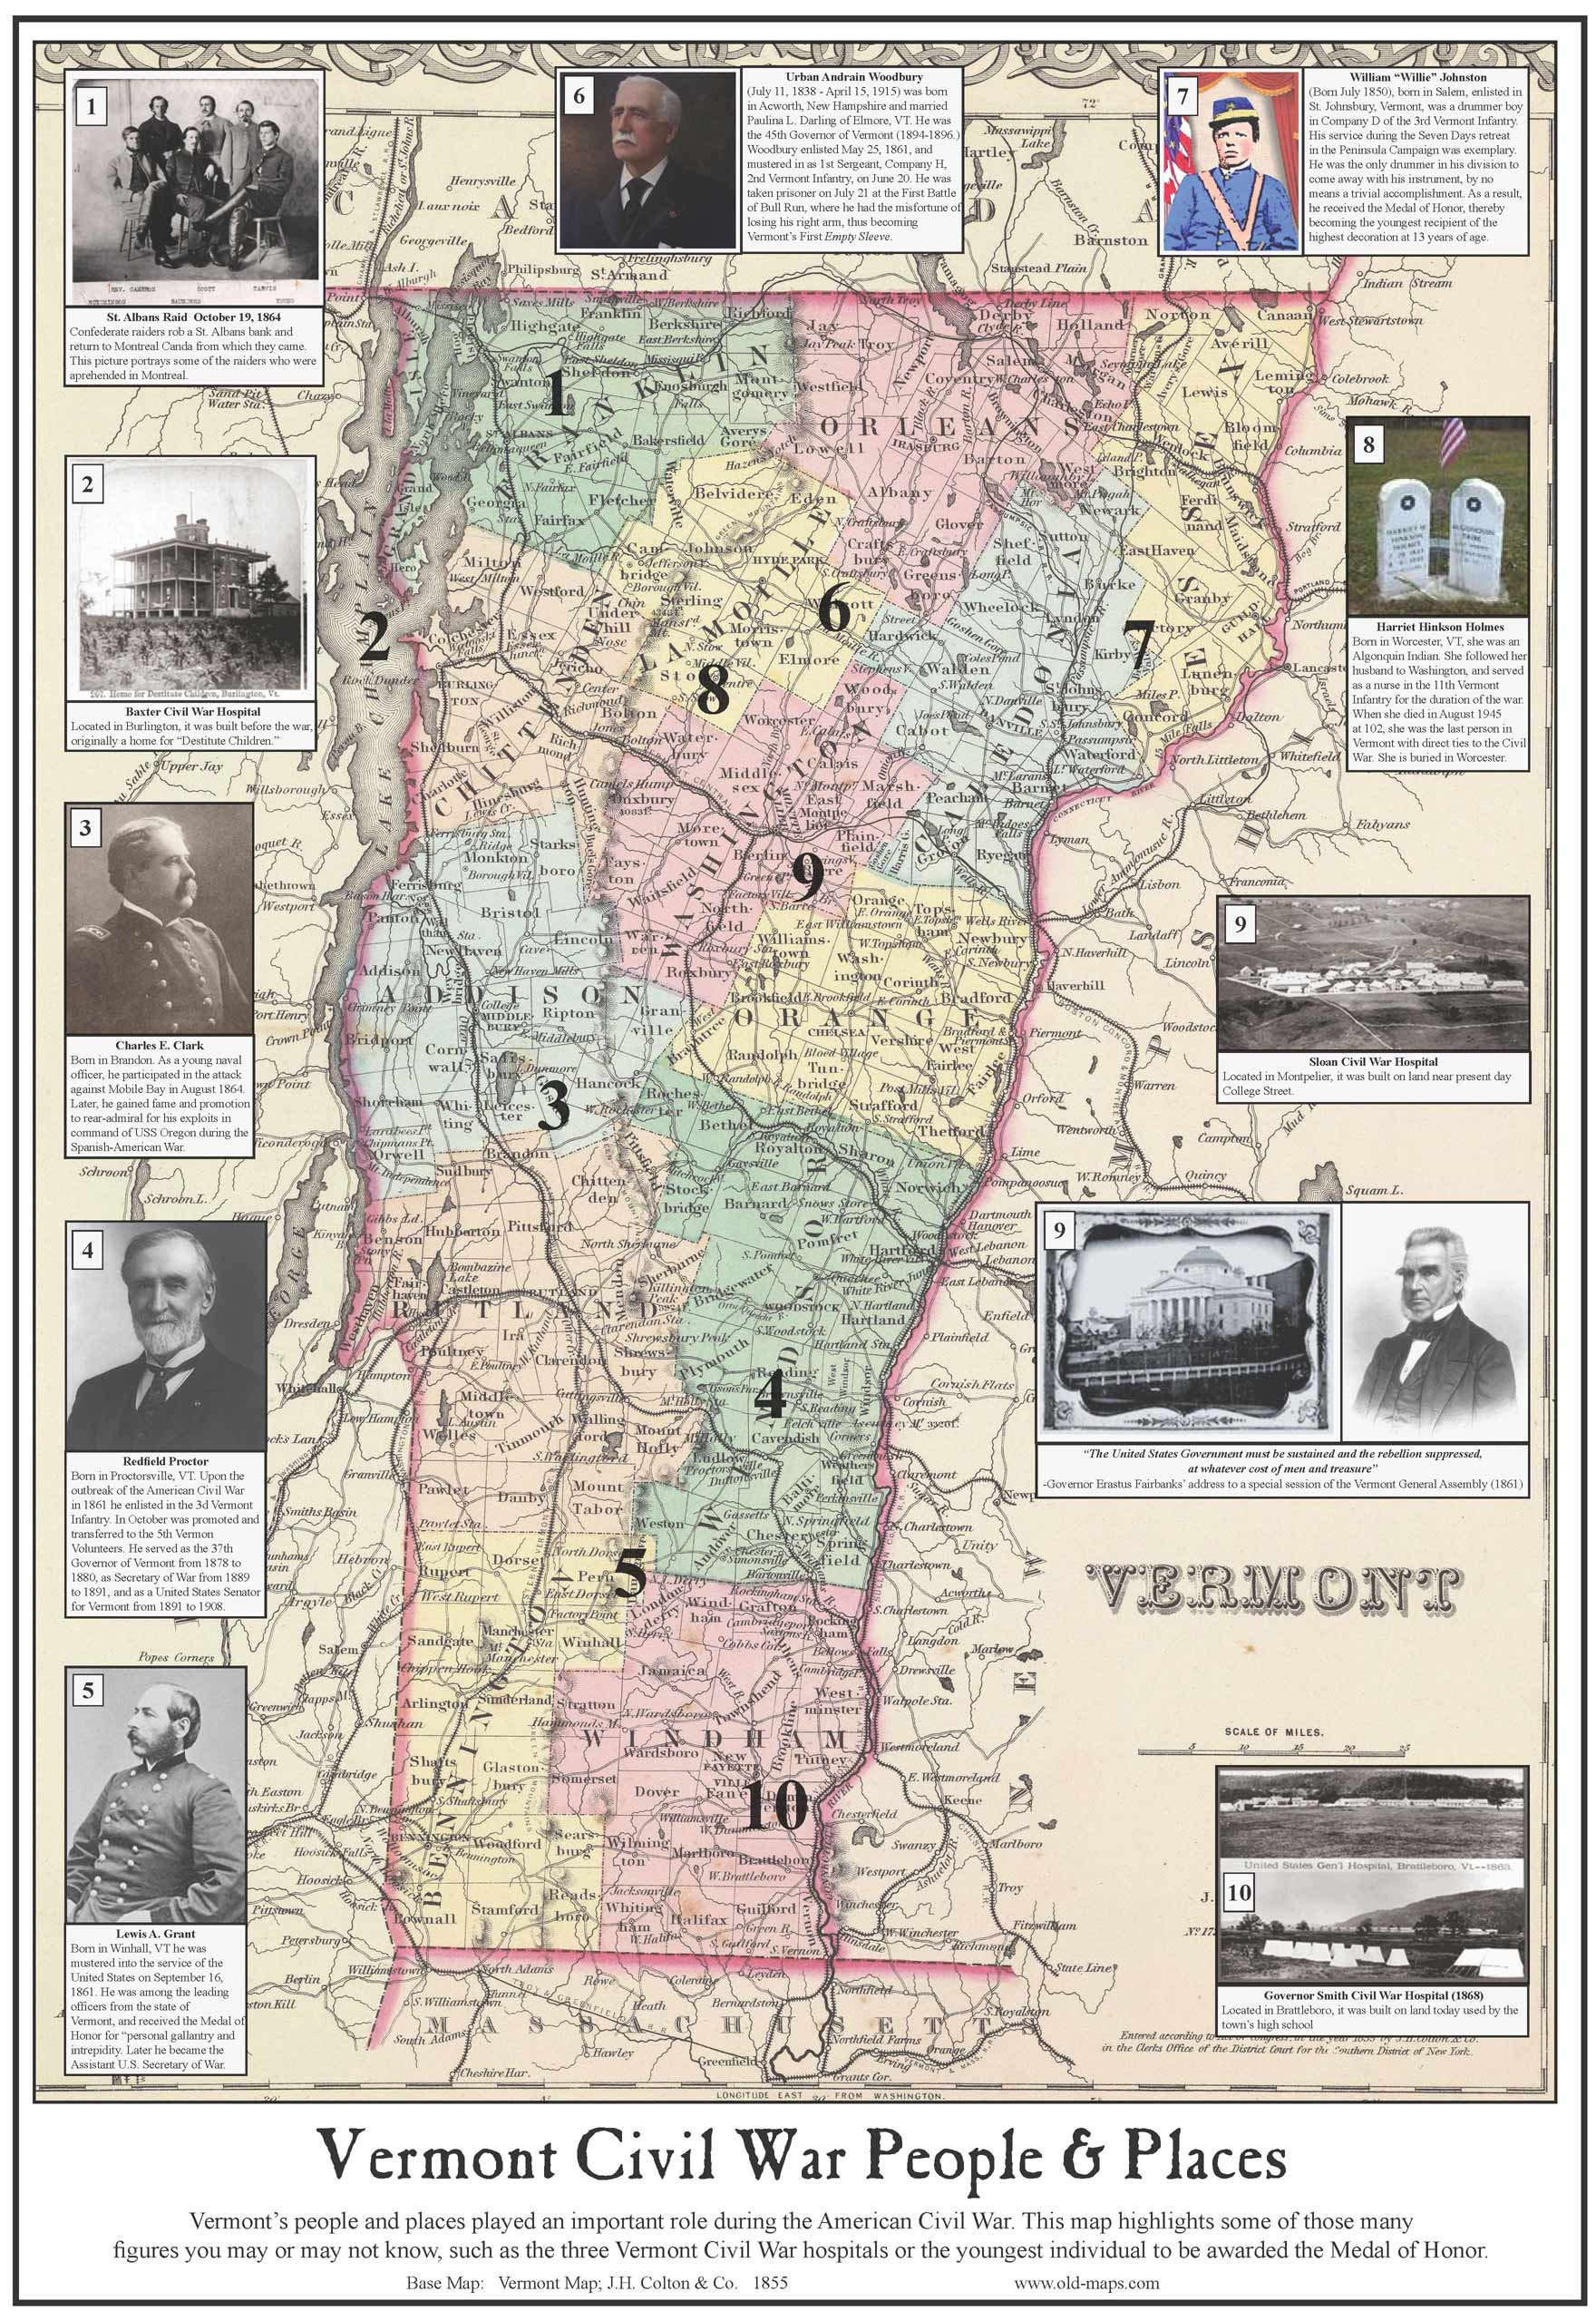 Old Vermont County Maps 1850s CD & Paper on